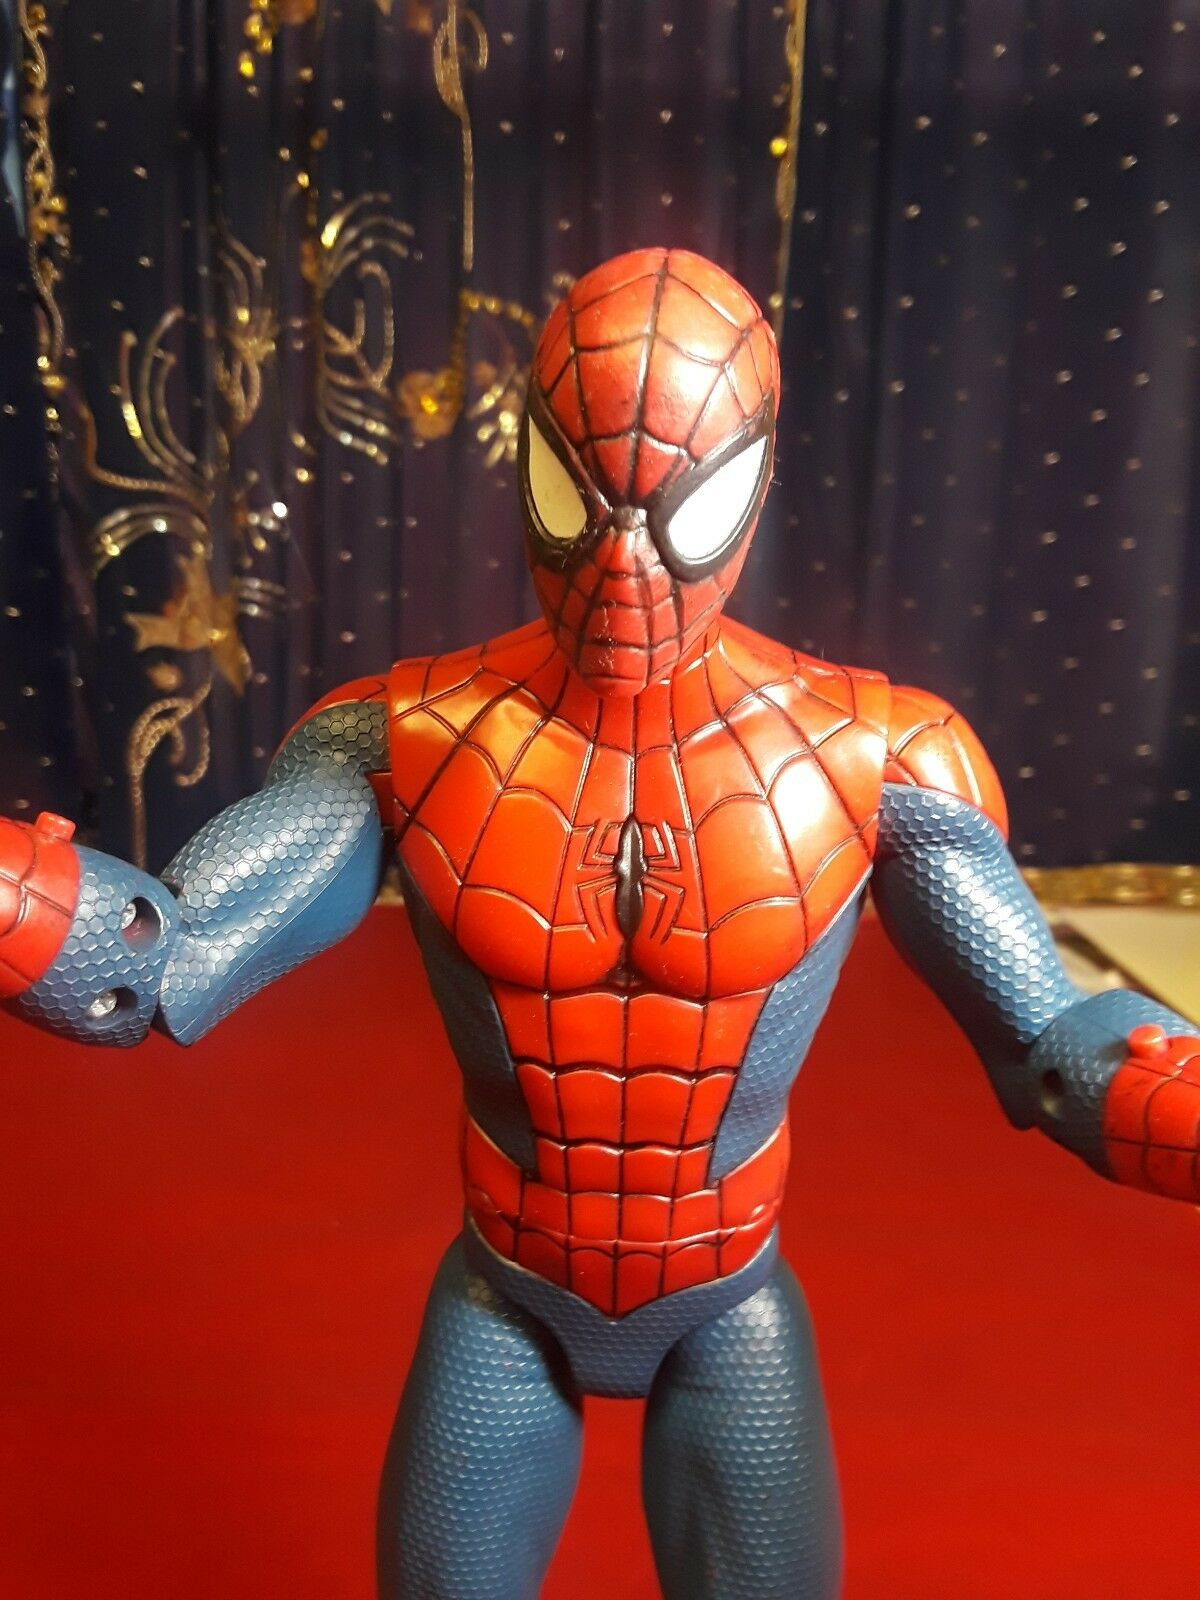 Spiderman Action Figure 13  Tall Marvel